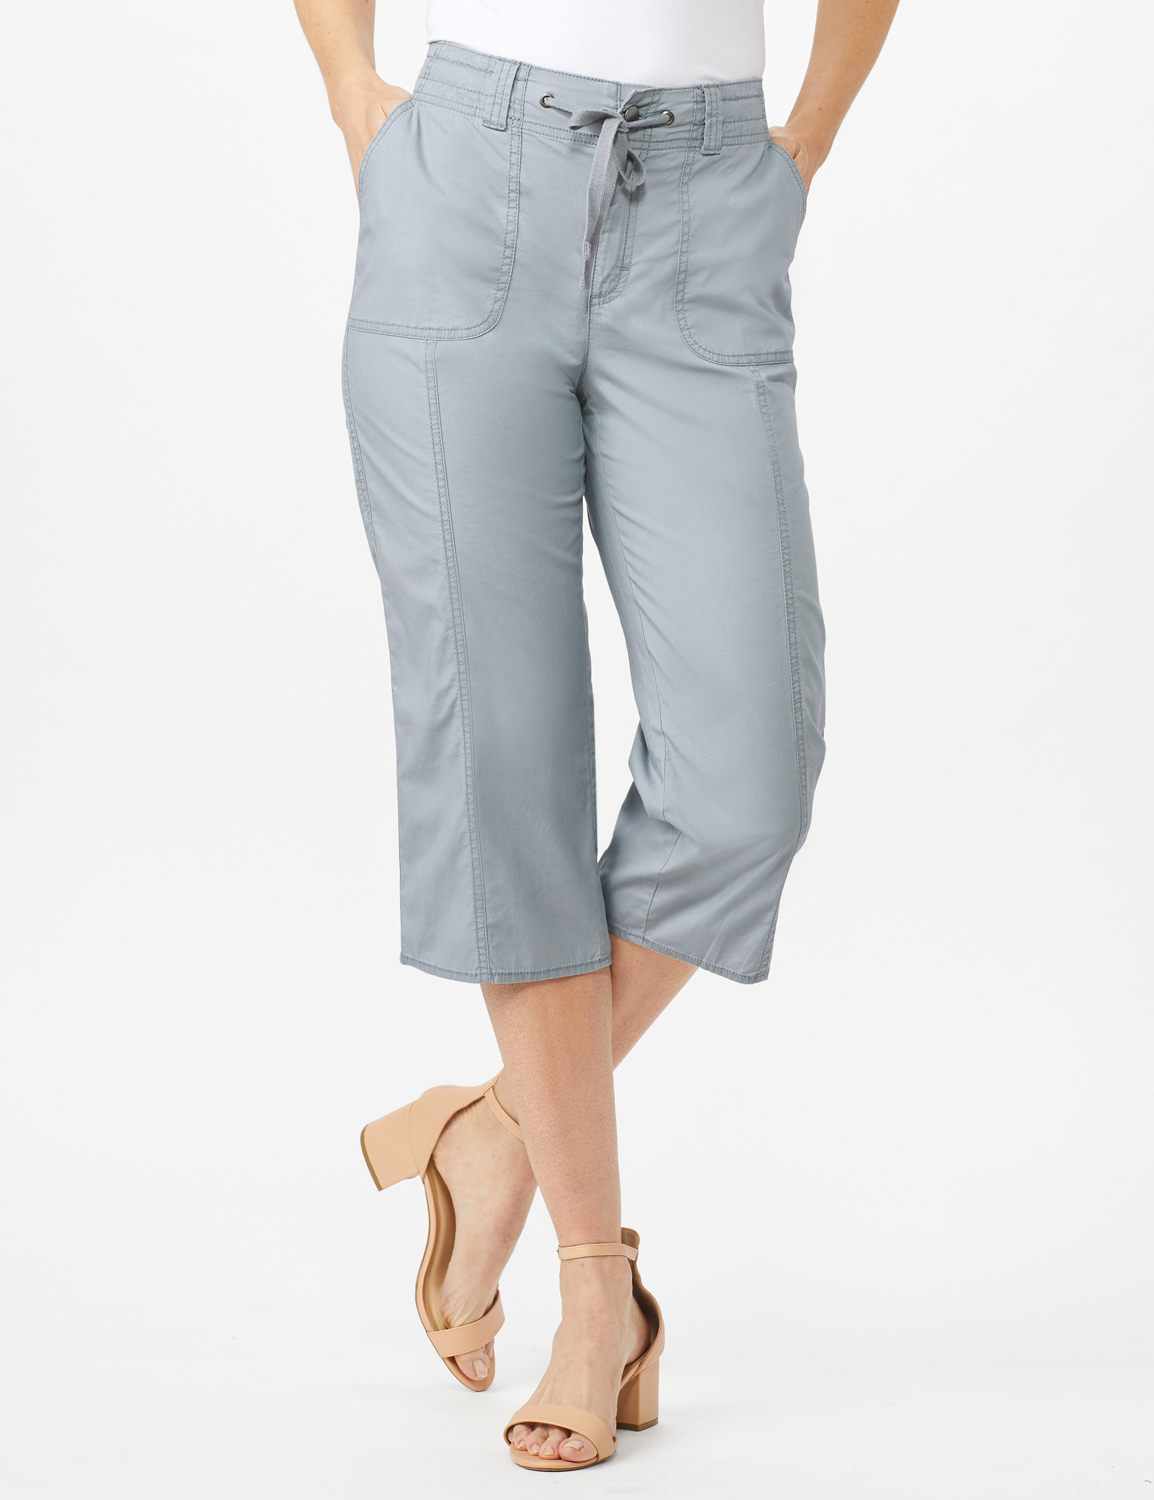 Utility Capri Pants with Drawstring Waist -Shy Grey - Front